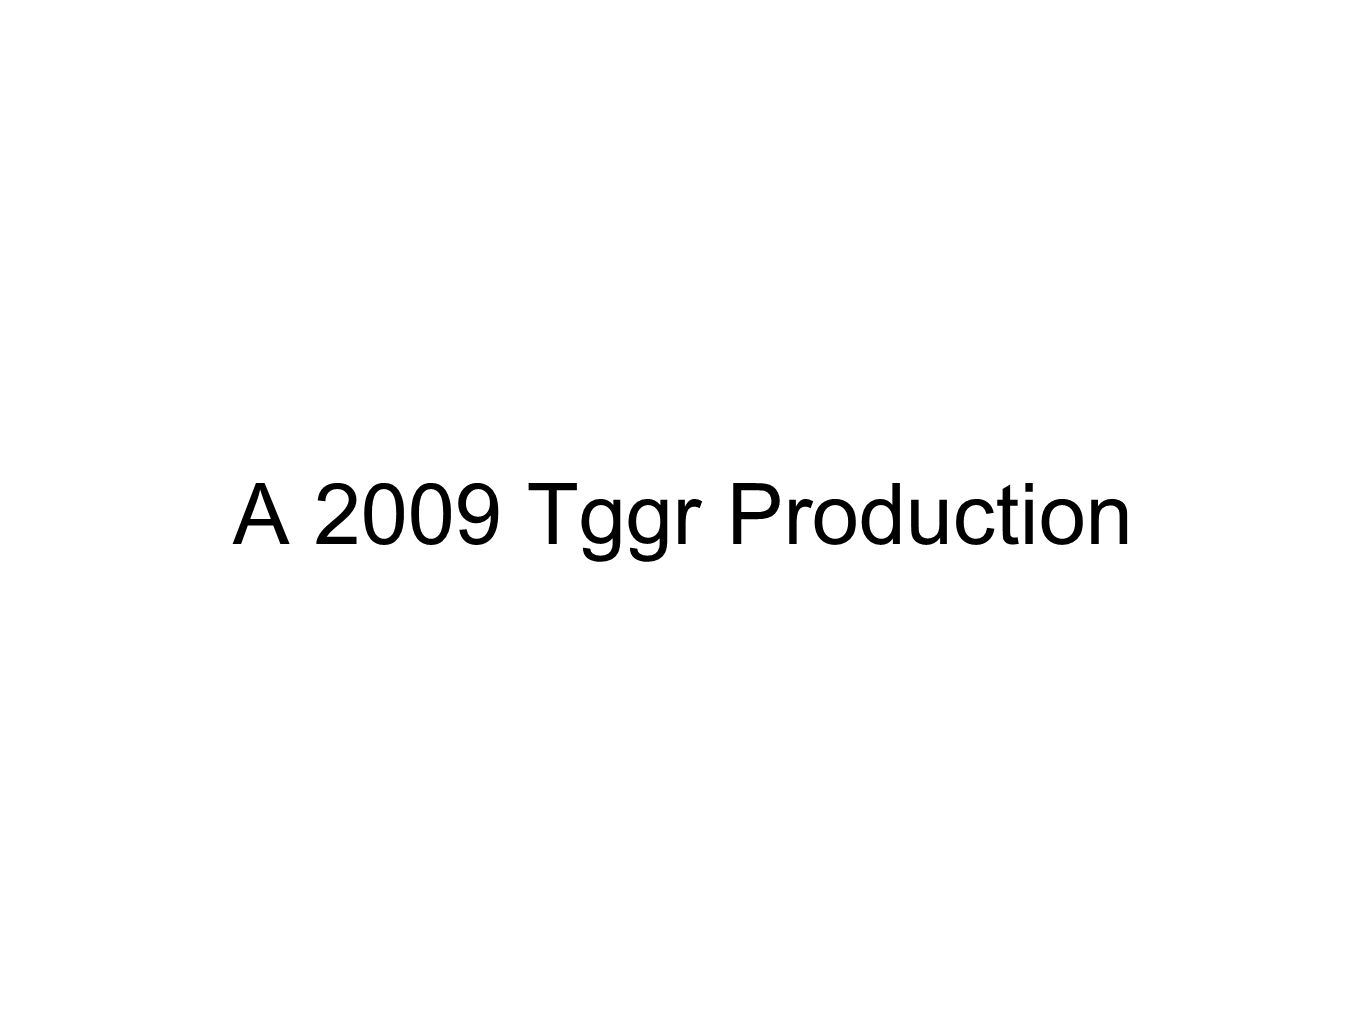 A 2009 Tggr Production